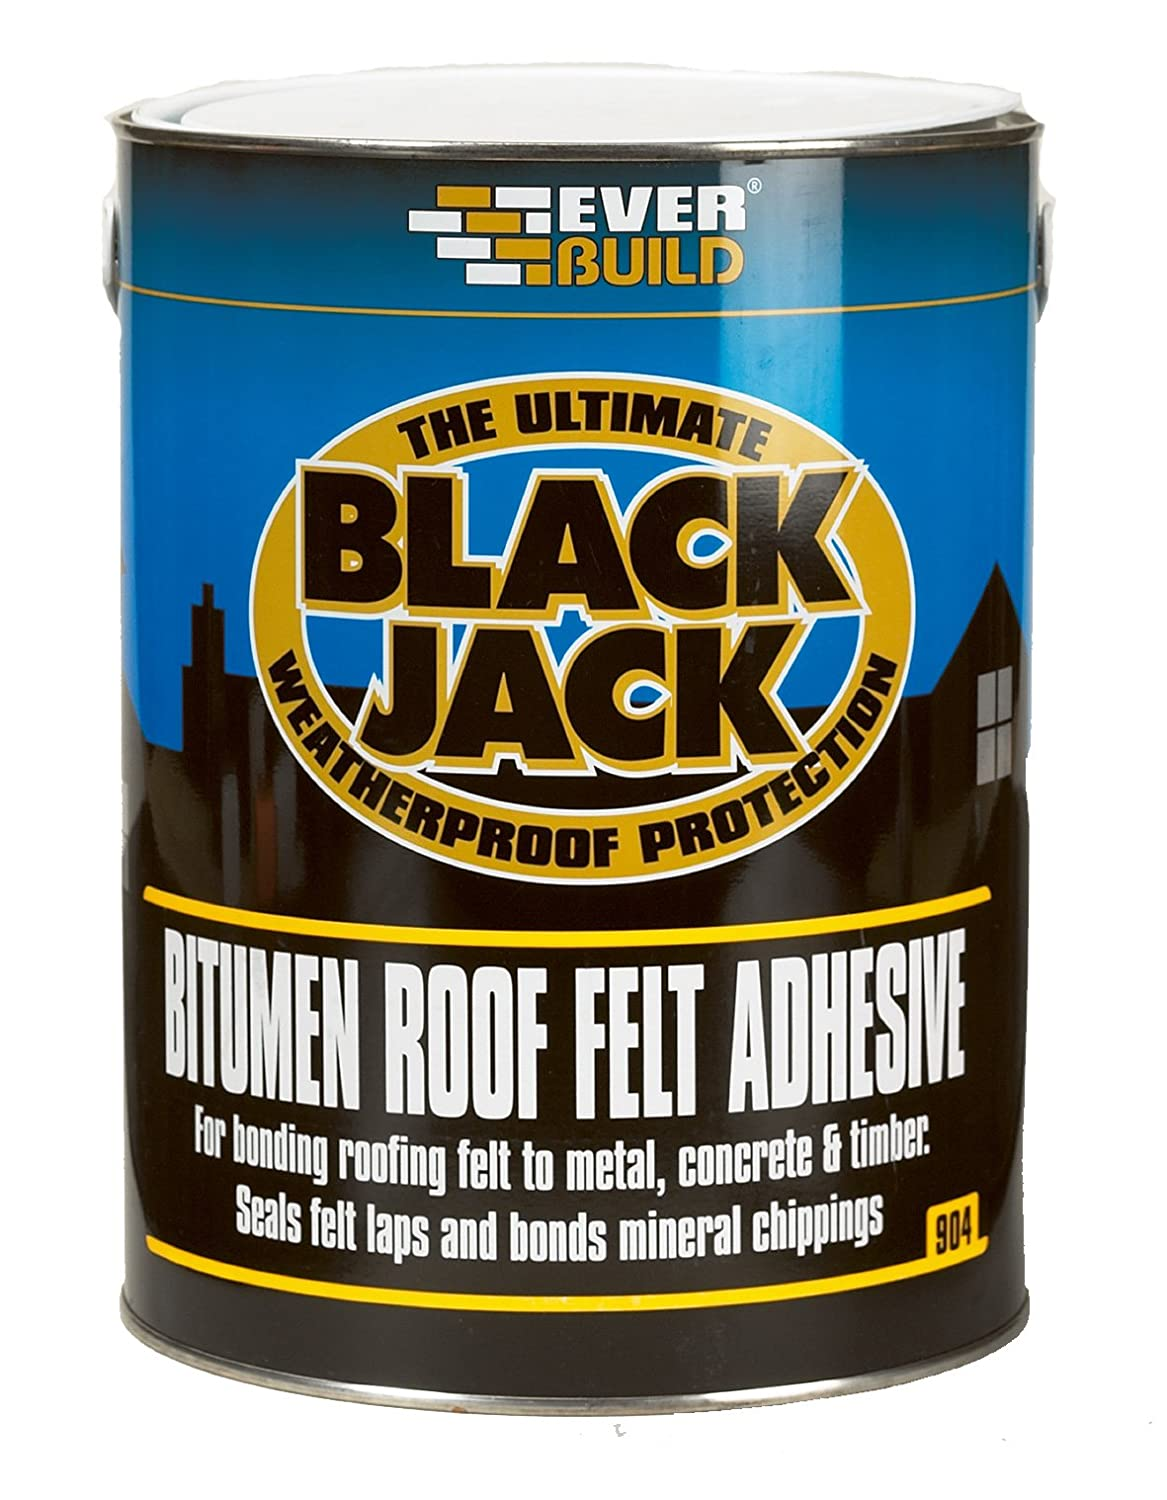 904 Roof Felt Adhesive - Cold applied adhesive to bond roofing felt to most surfaces - 25L - Black Everbuild 90425